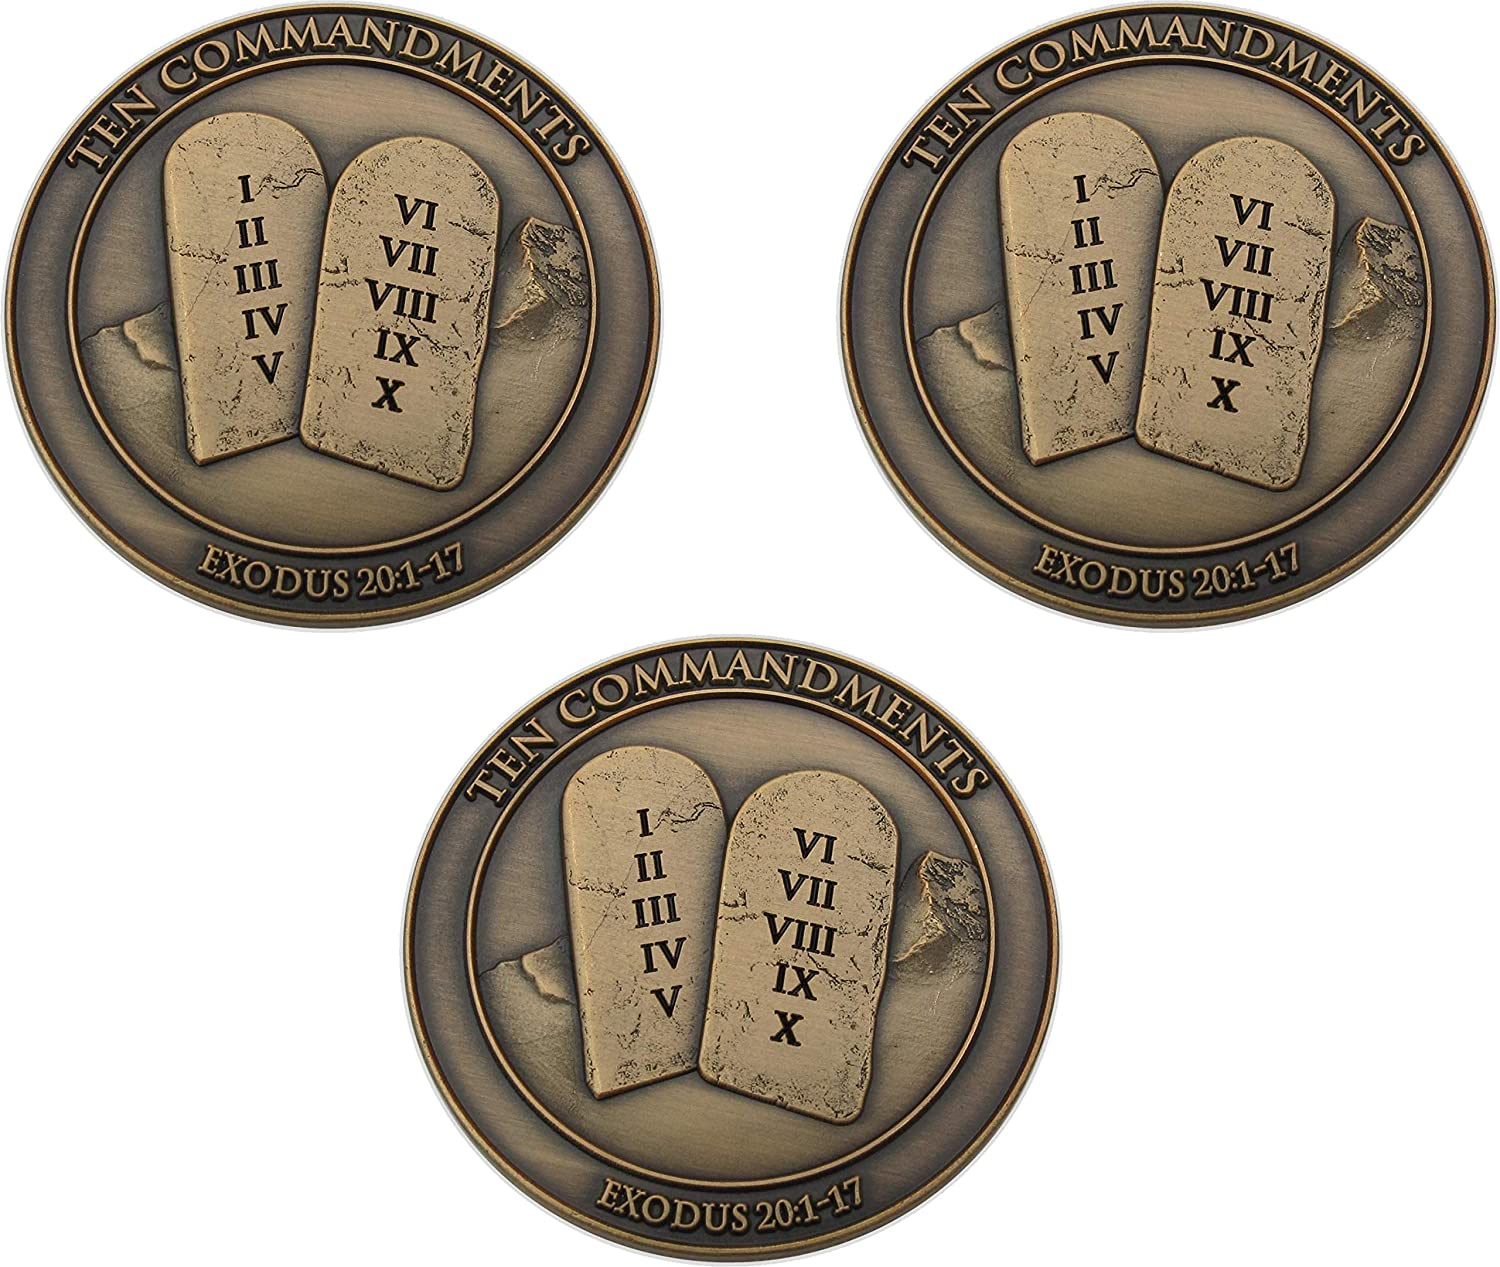 Ten Commandments Coin Special sale item Bulk Pack of 3 E Am Your Lord The I New Shipping Free Shipping God